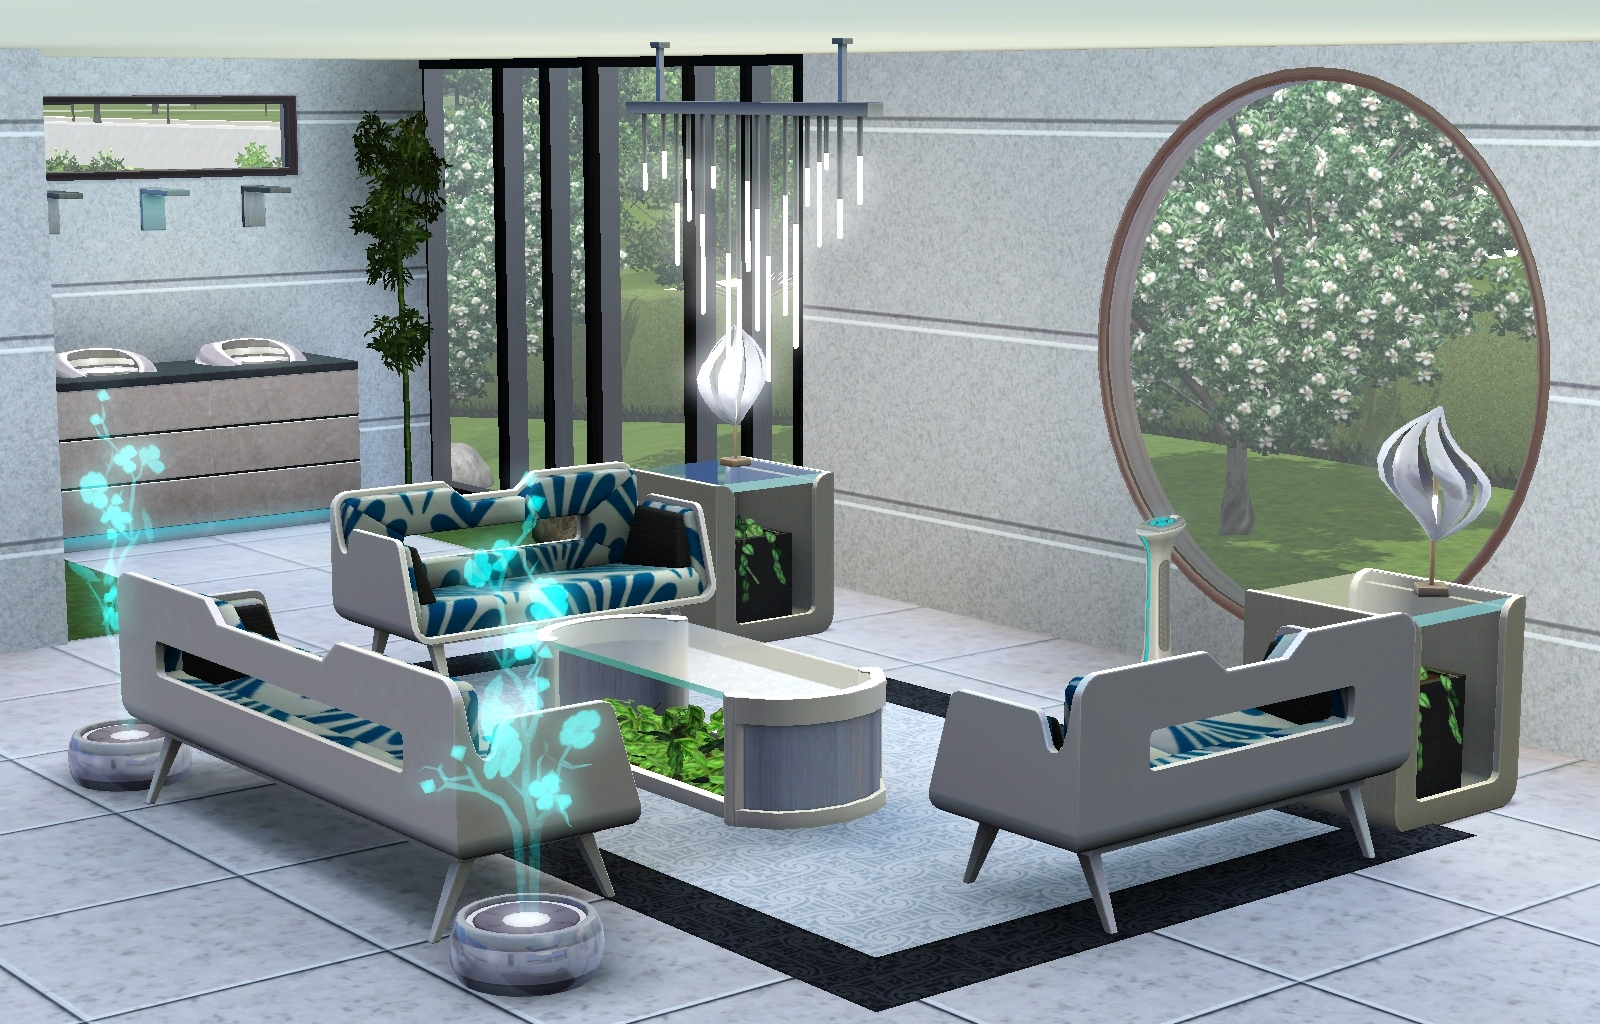 futuristic 4 bedroom house house design and decorating ideas - Sims 4 Home Design 2